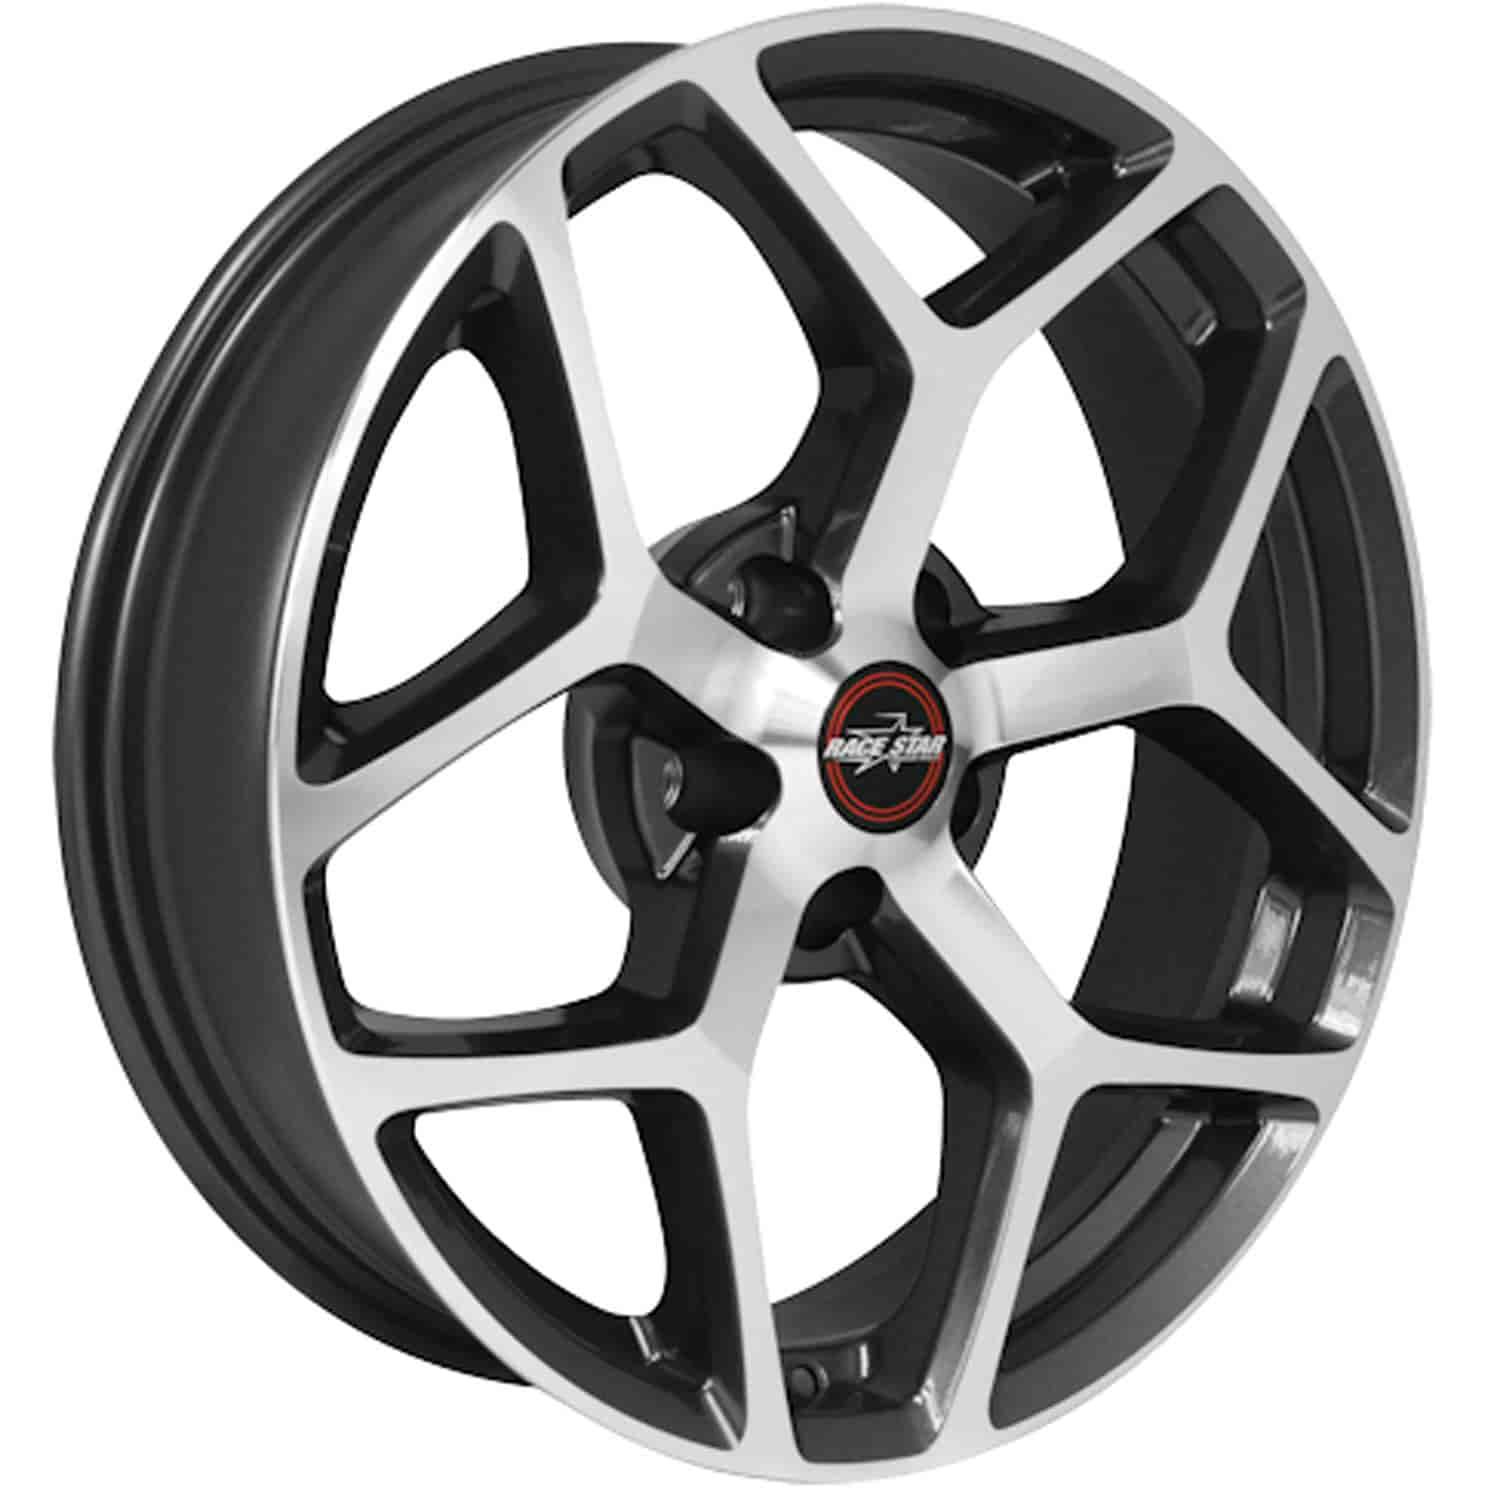 Race Star Wheels 95-745245GP